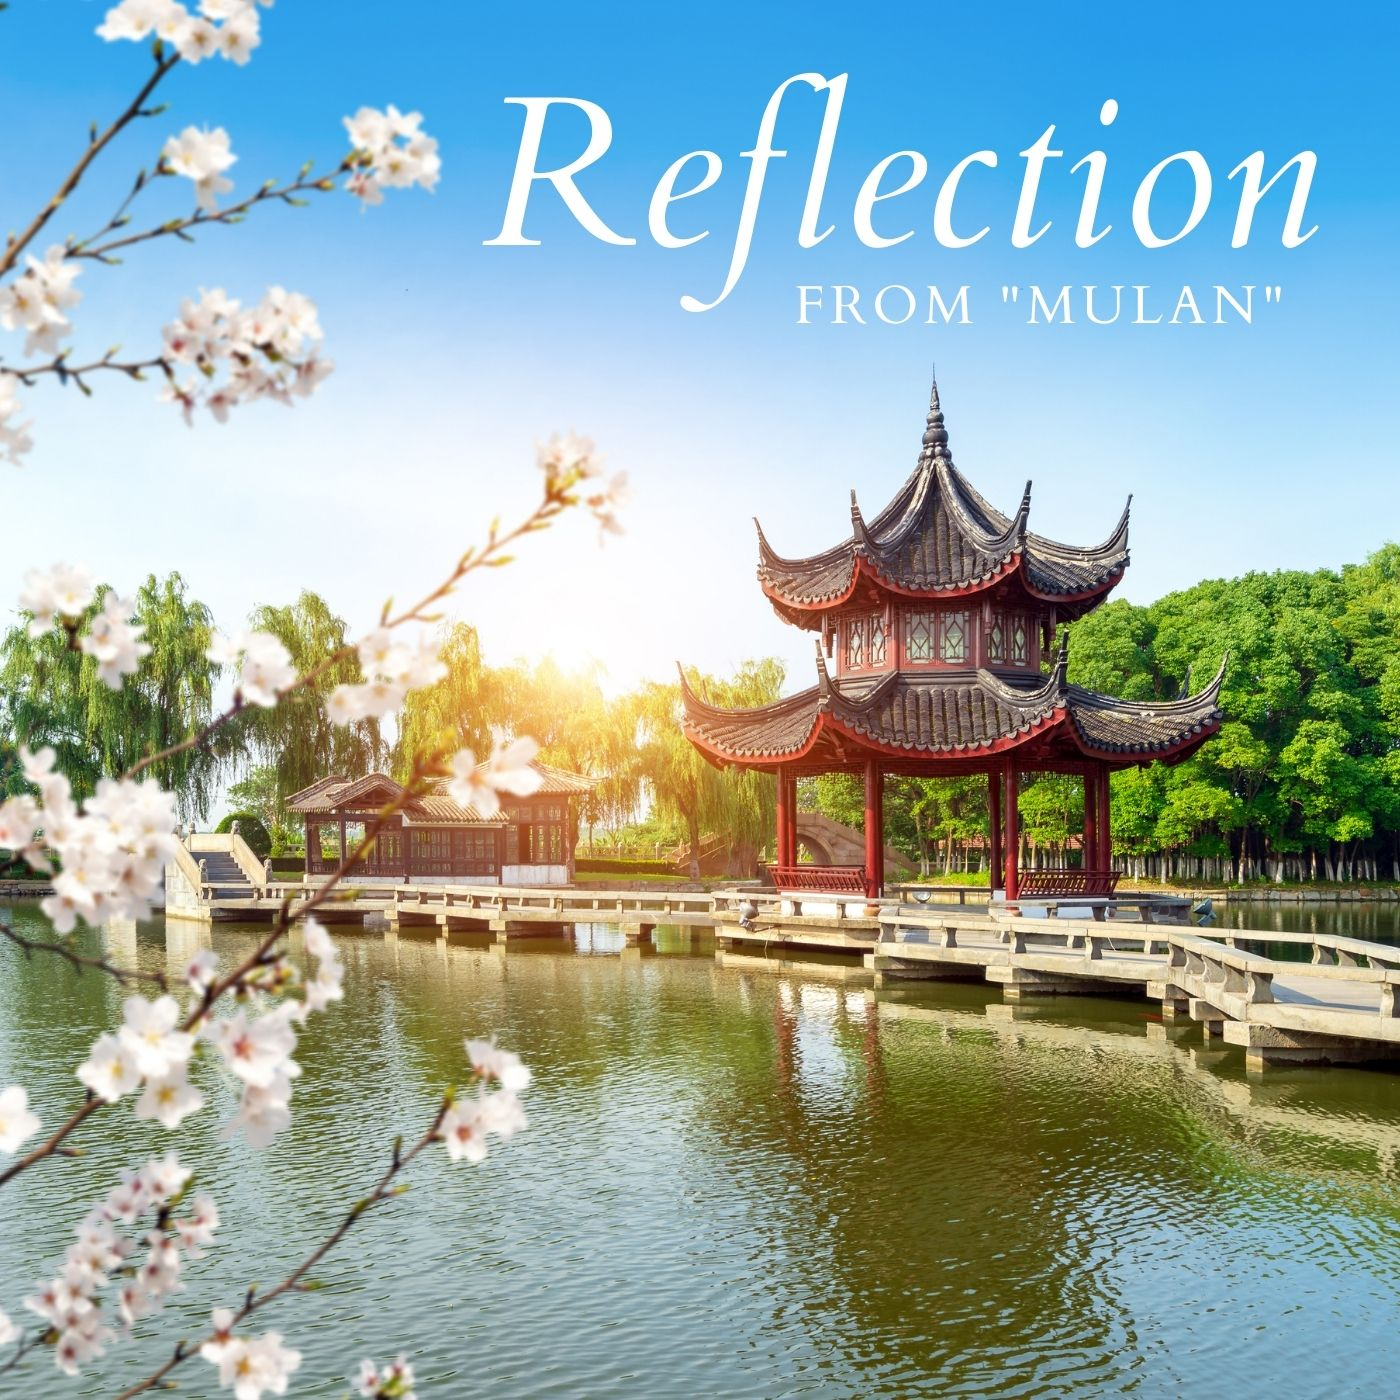 Reflection (from